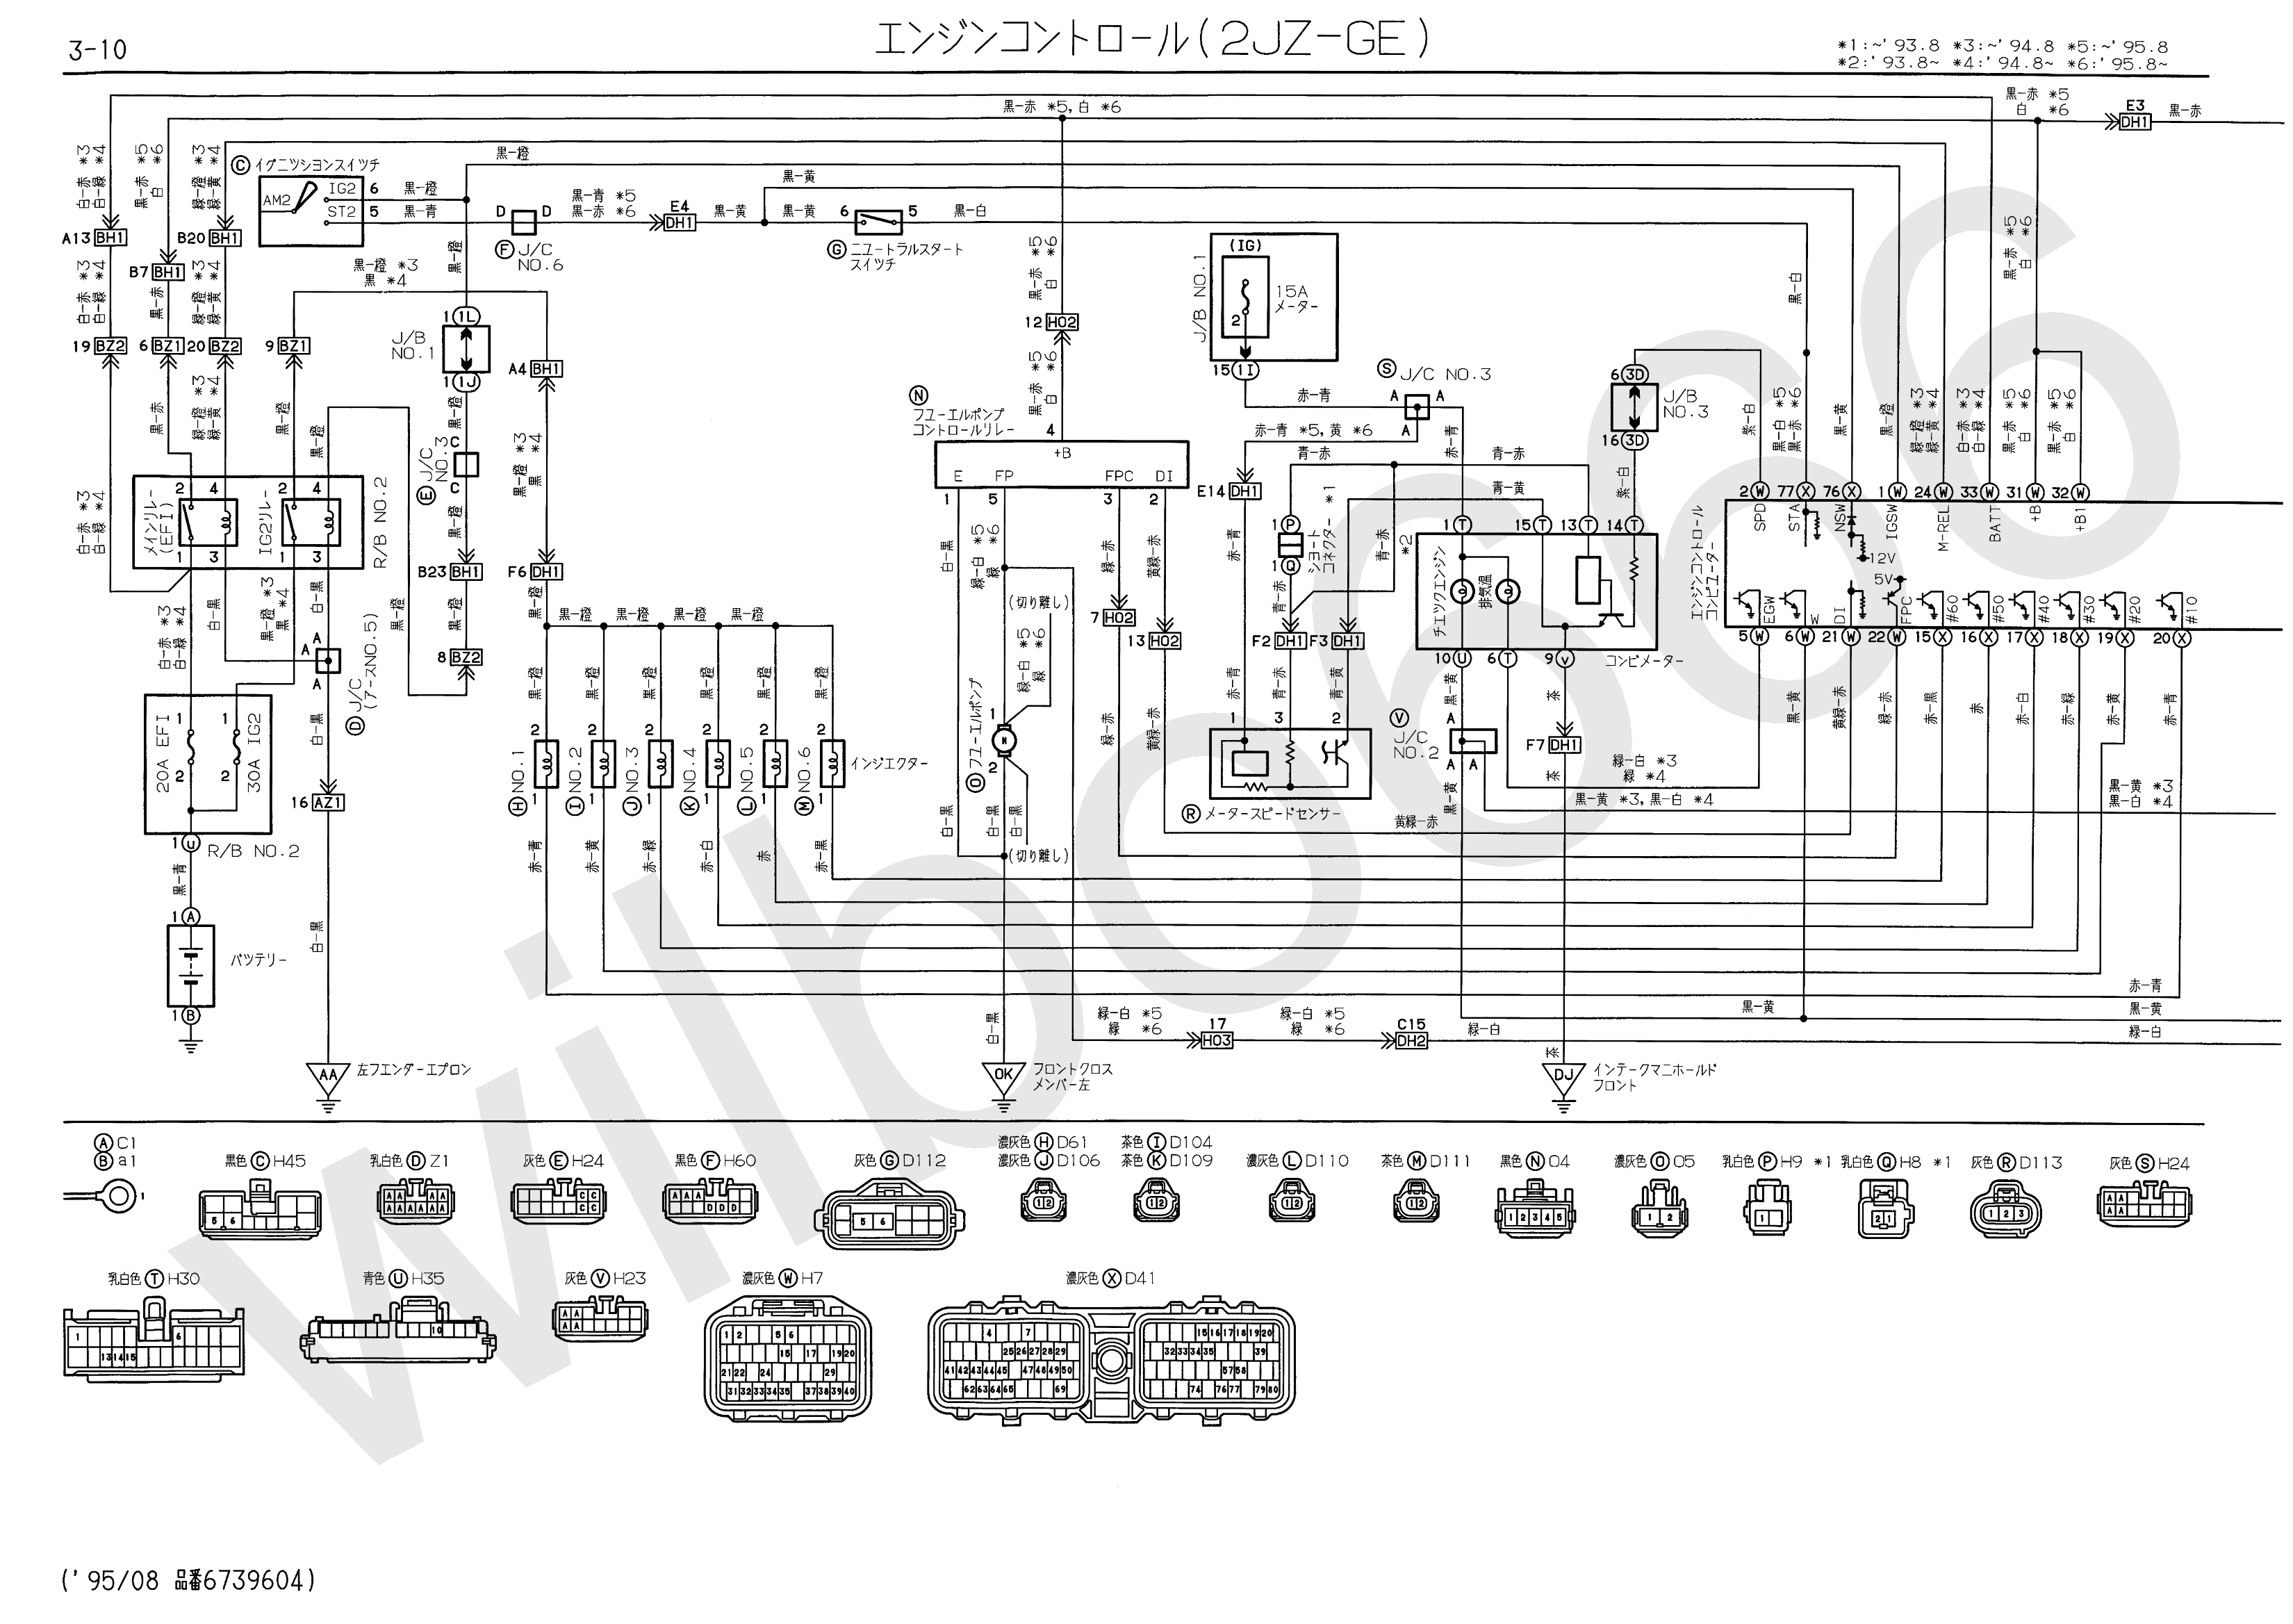 JZS14%23%2C UZS14%23 Electrical Wiring Diagram 6739604 3 10 wilbo666 2jz ge jzs147 engine wiring ge wiring diagrams at soozxer.org